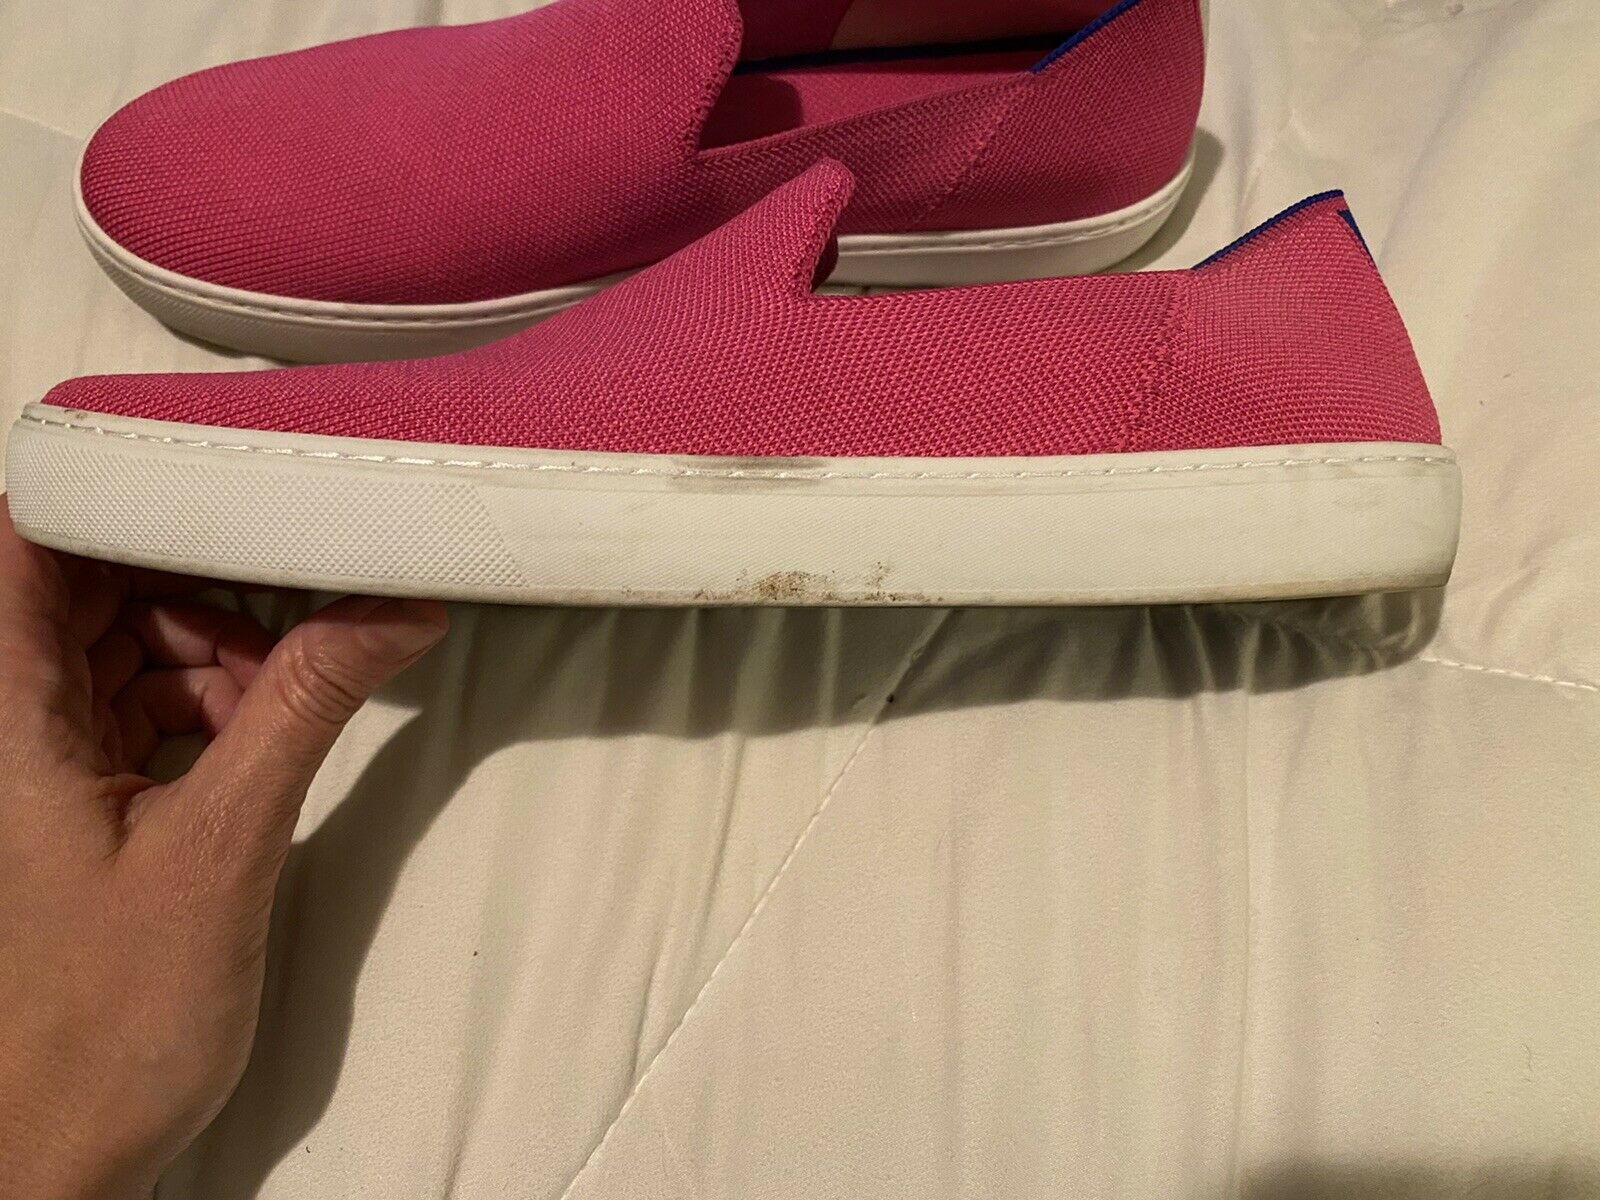 Rothys sneakers Bubblegum pink size 12.5 - image 3